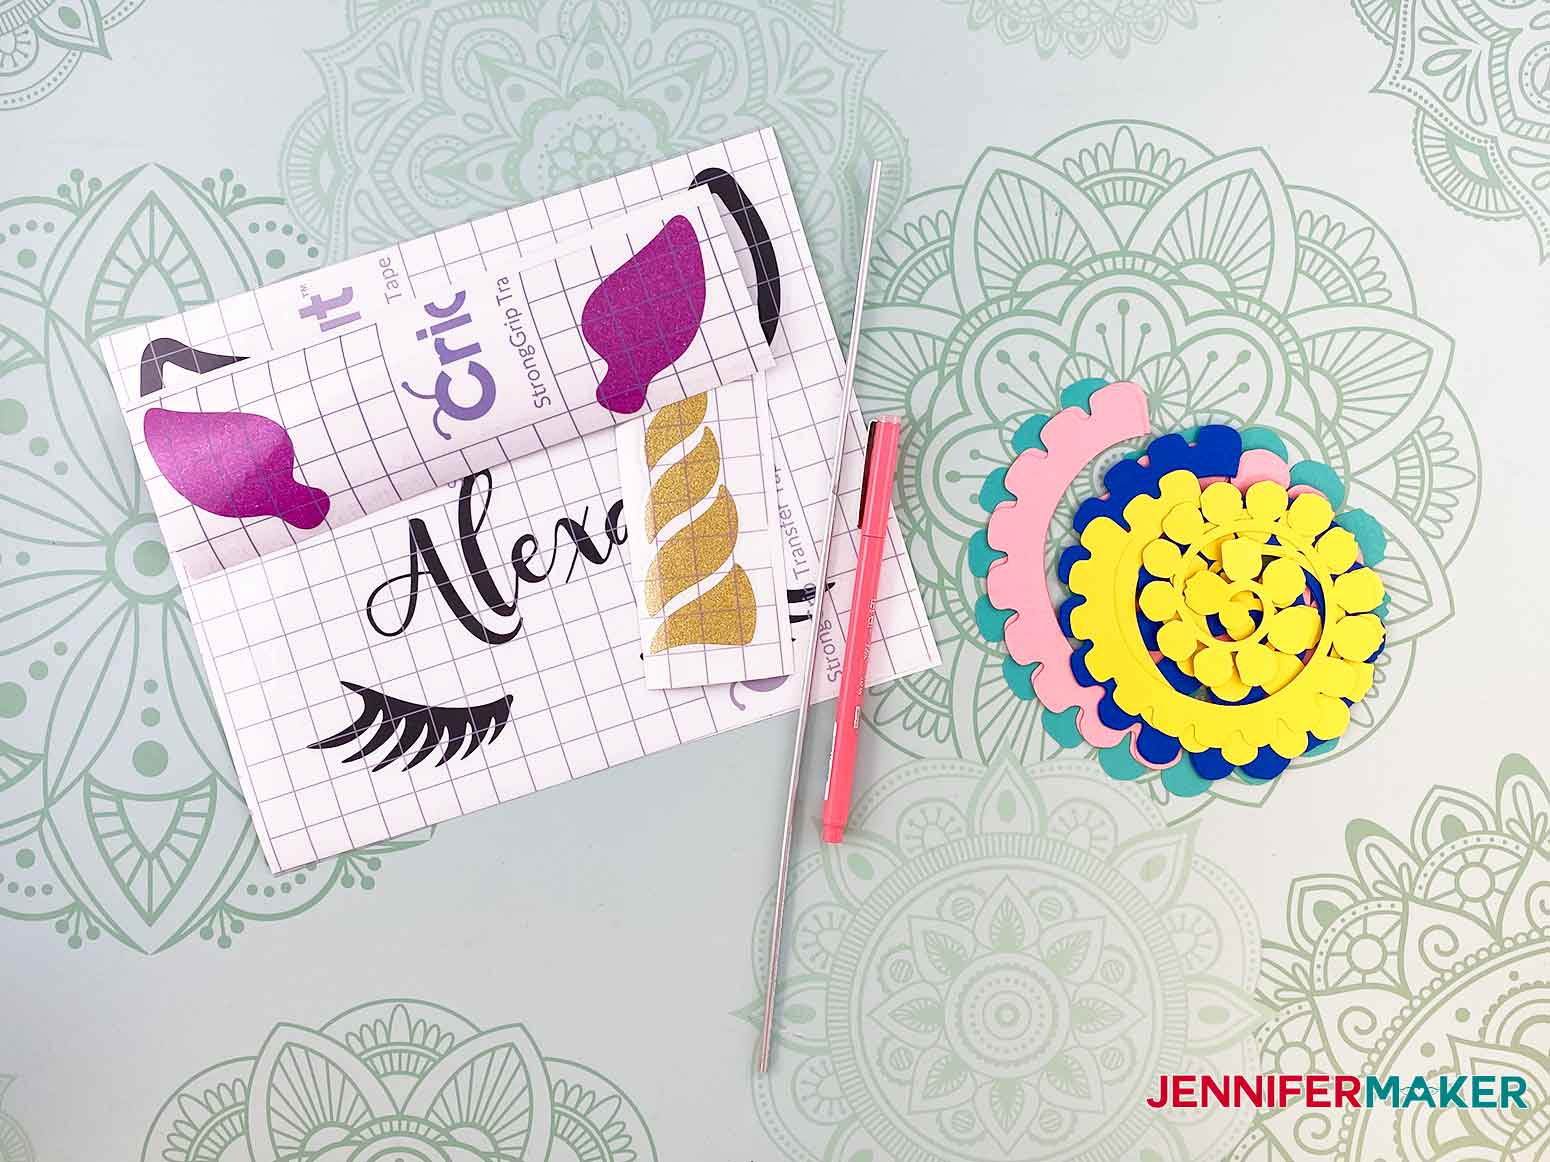 Gather your cut vinyl and paper roses to begin assembling your personalized unicorn frame